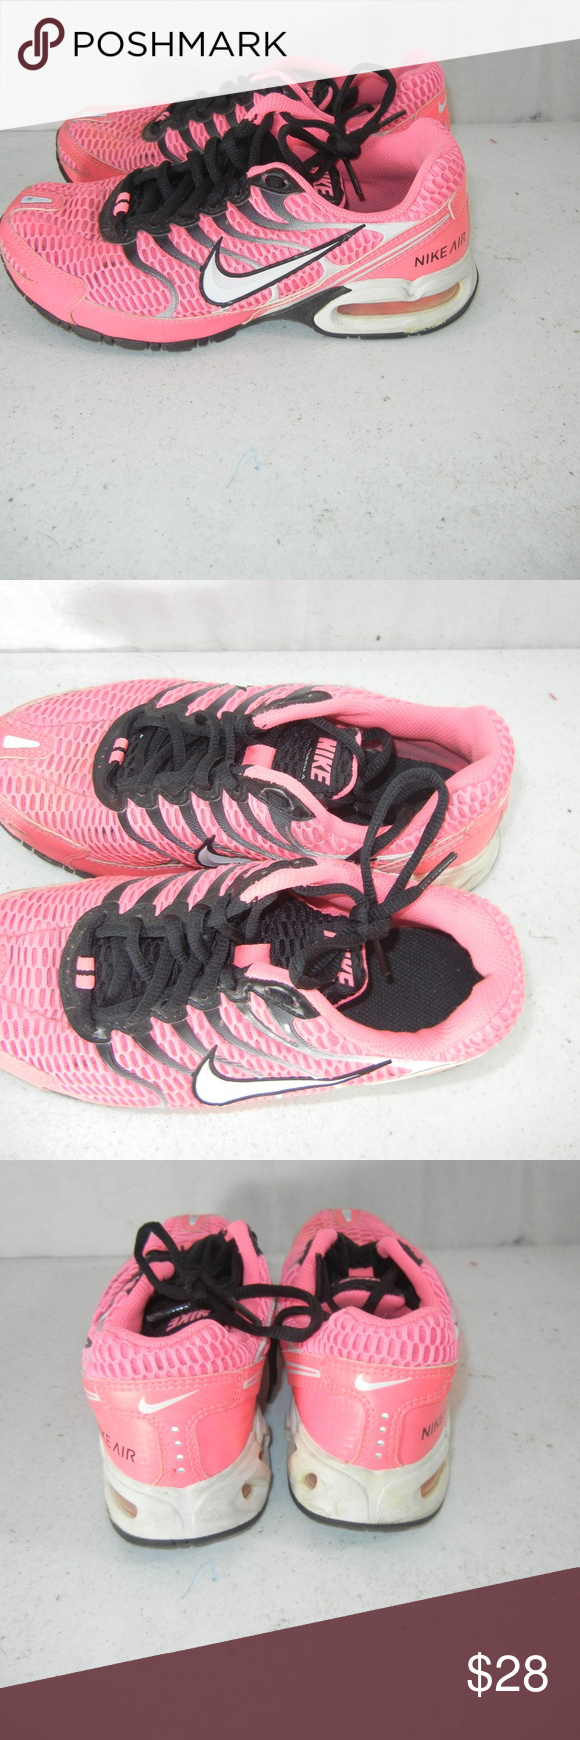 NIKE AIR US SZ 6 Pink Torch 4 Running Sneaker Clothes